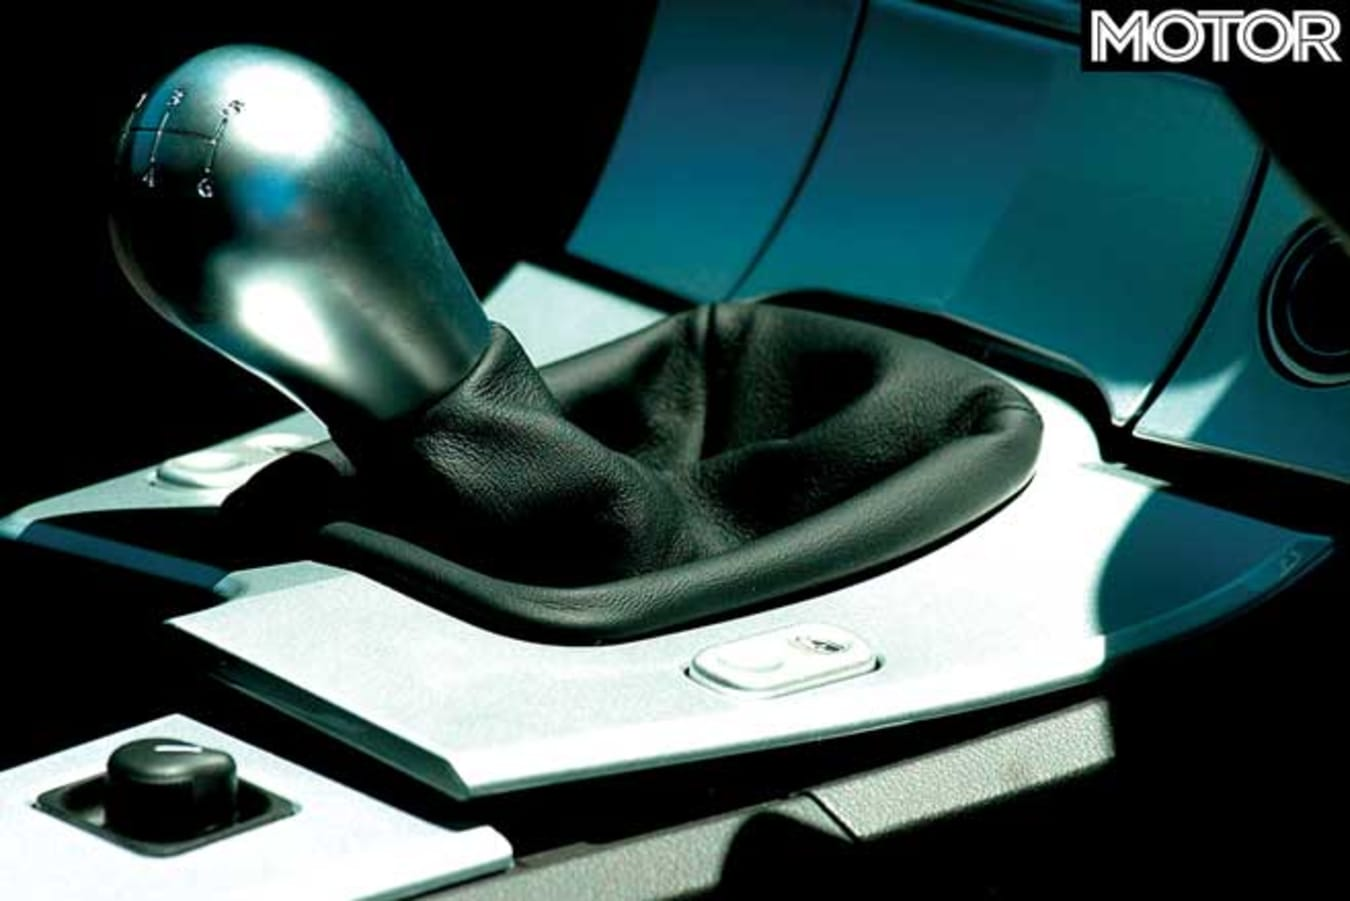 Performance Car Of The Year 2004 Chrysler Crossfire Gearchange Jpg